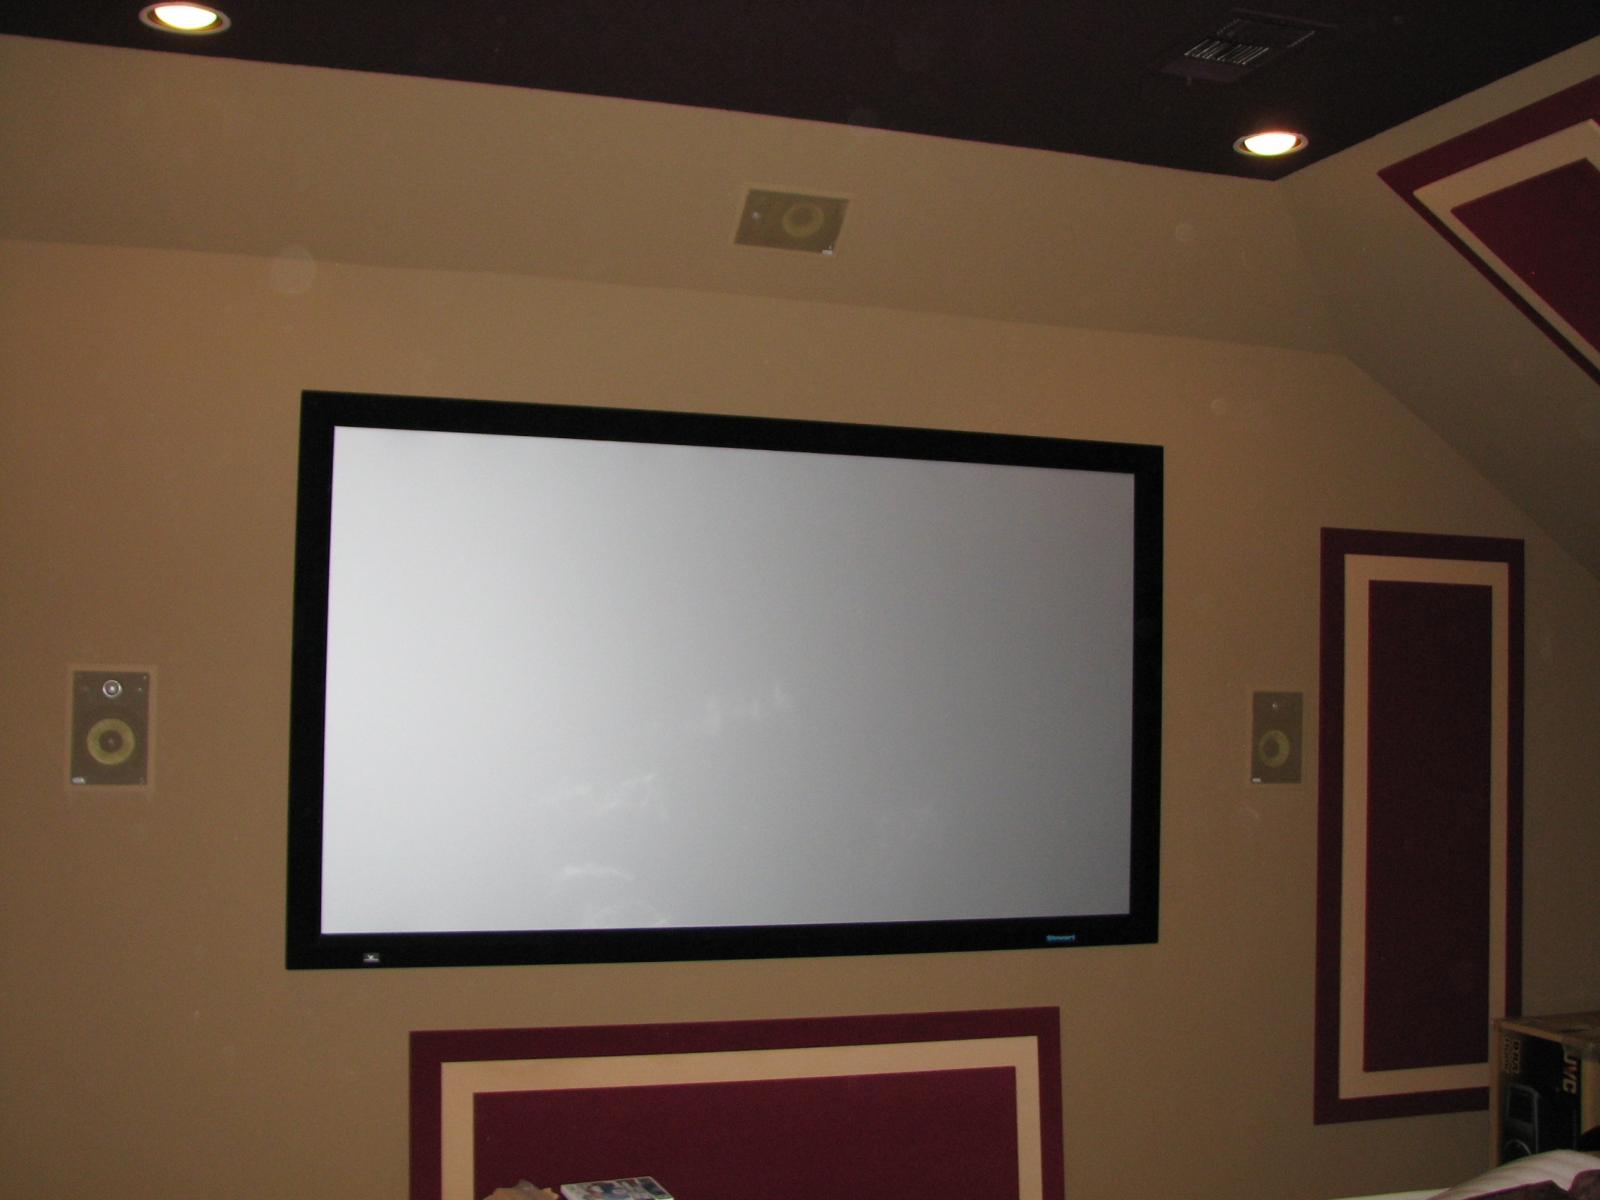 Media Rooms/Projector and Screens